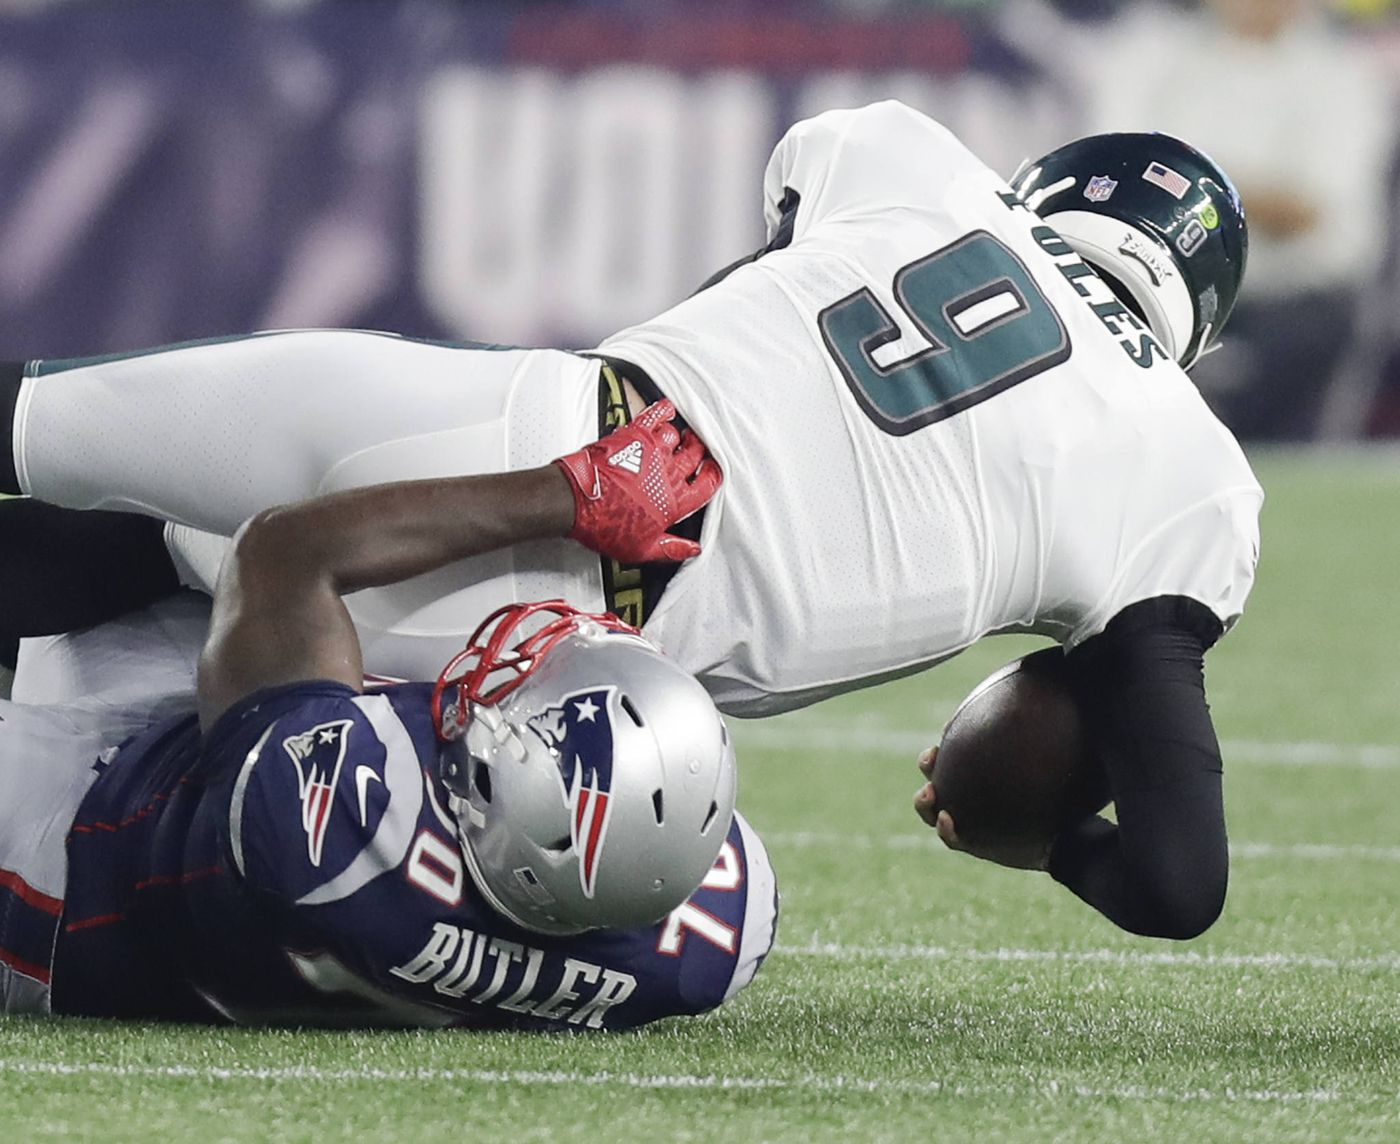 The Eagles' starting offense is scoreless this preseason. Does it matter?